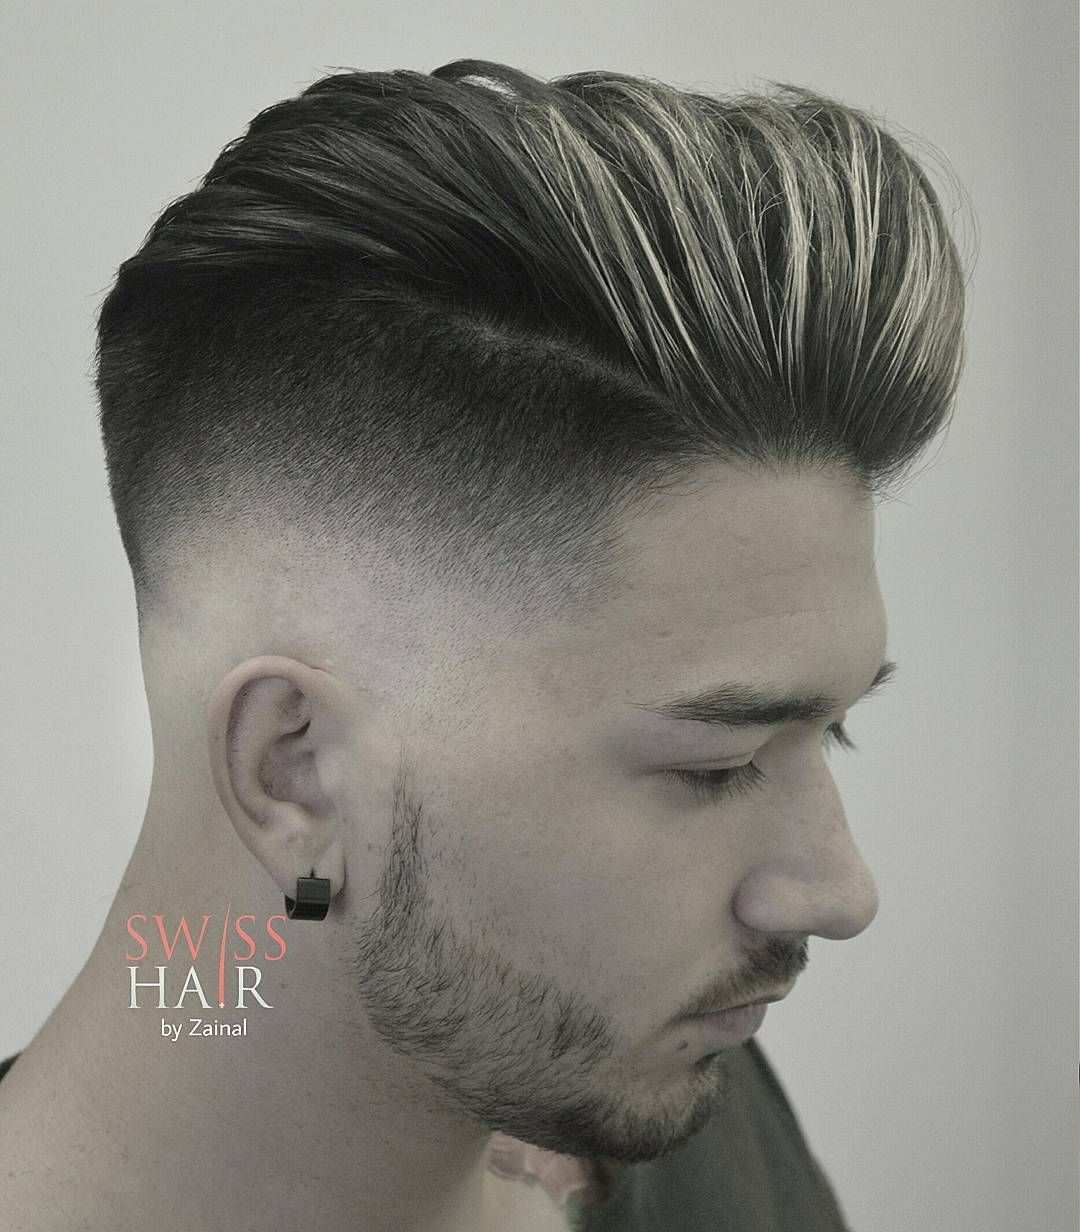 80 New Hairstyles For Men (2018 Update) | Pinterest | Haircut styles ...